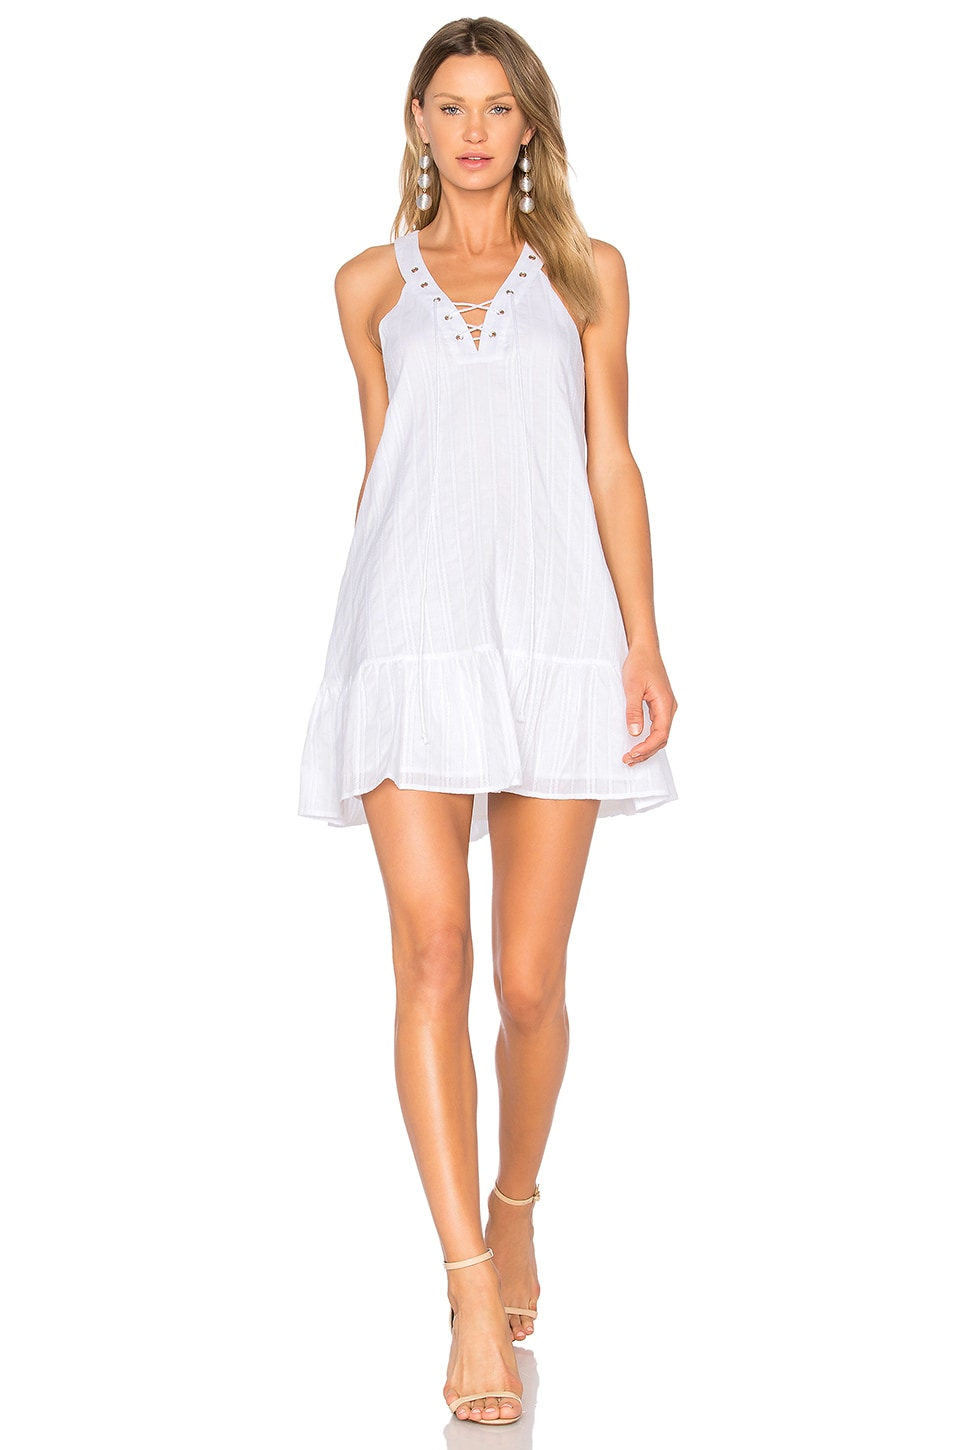 J.O.A. Lace Up Mini Dress in White